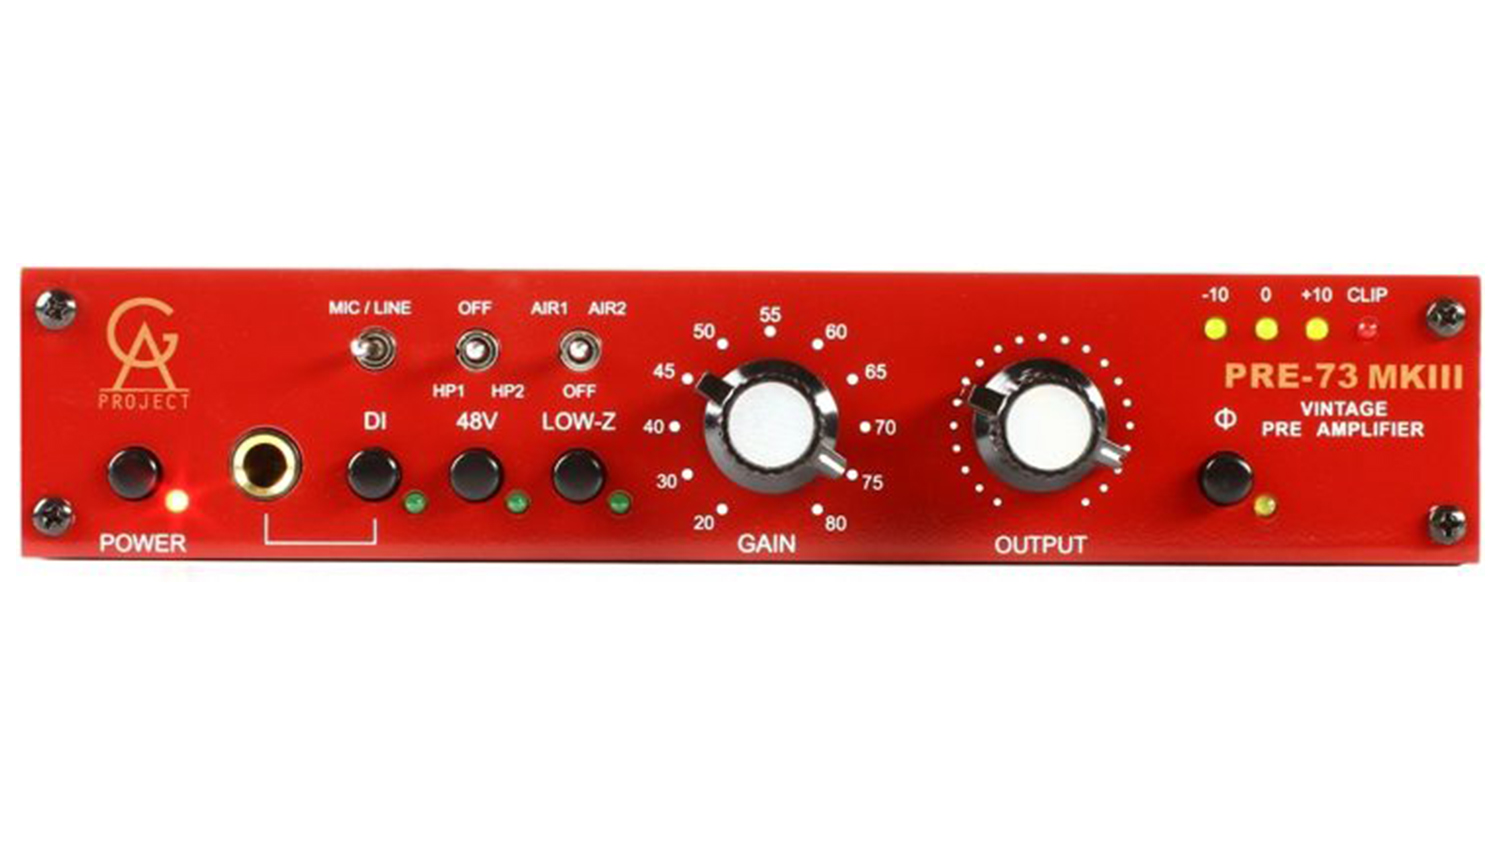 golden age project pre-73 mkiii preamp